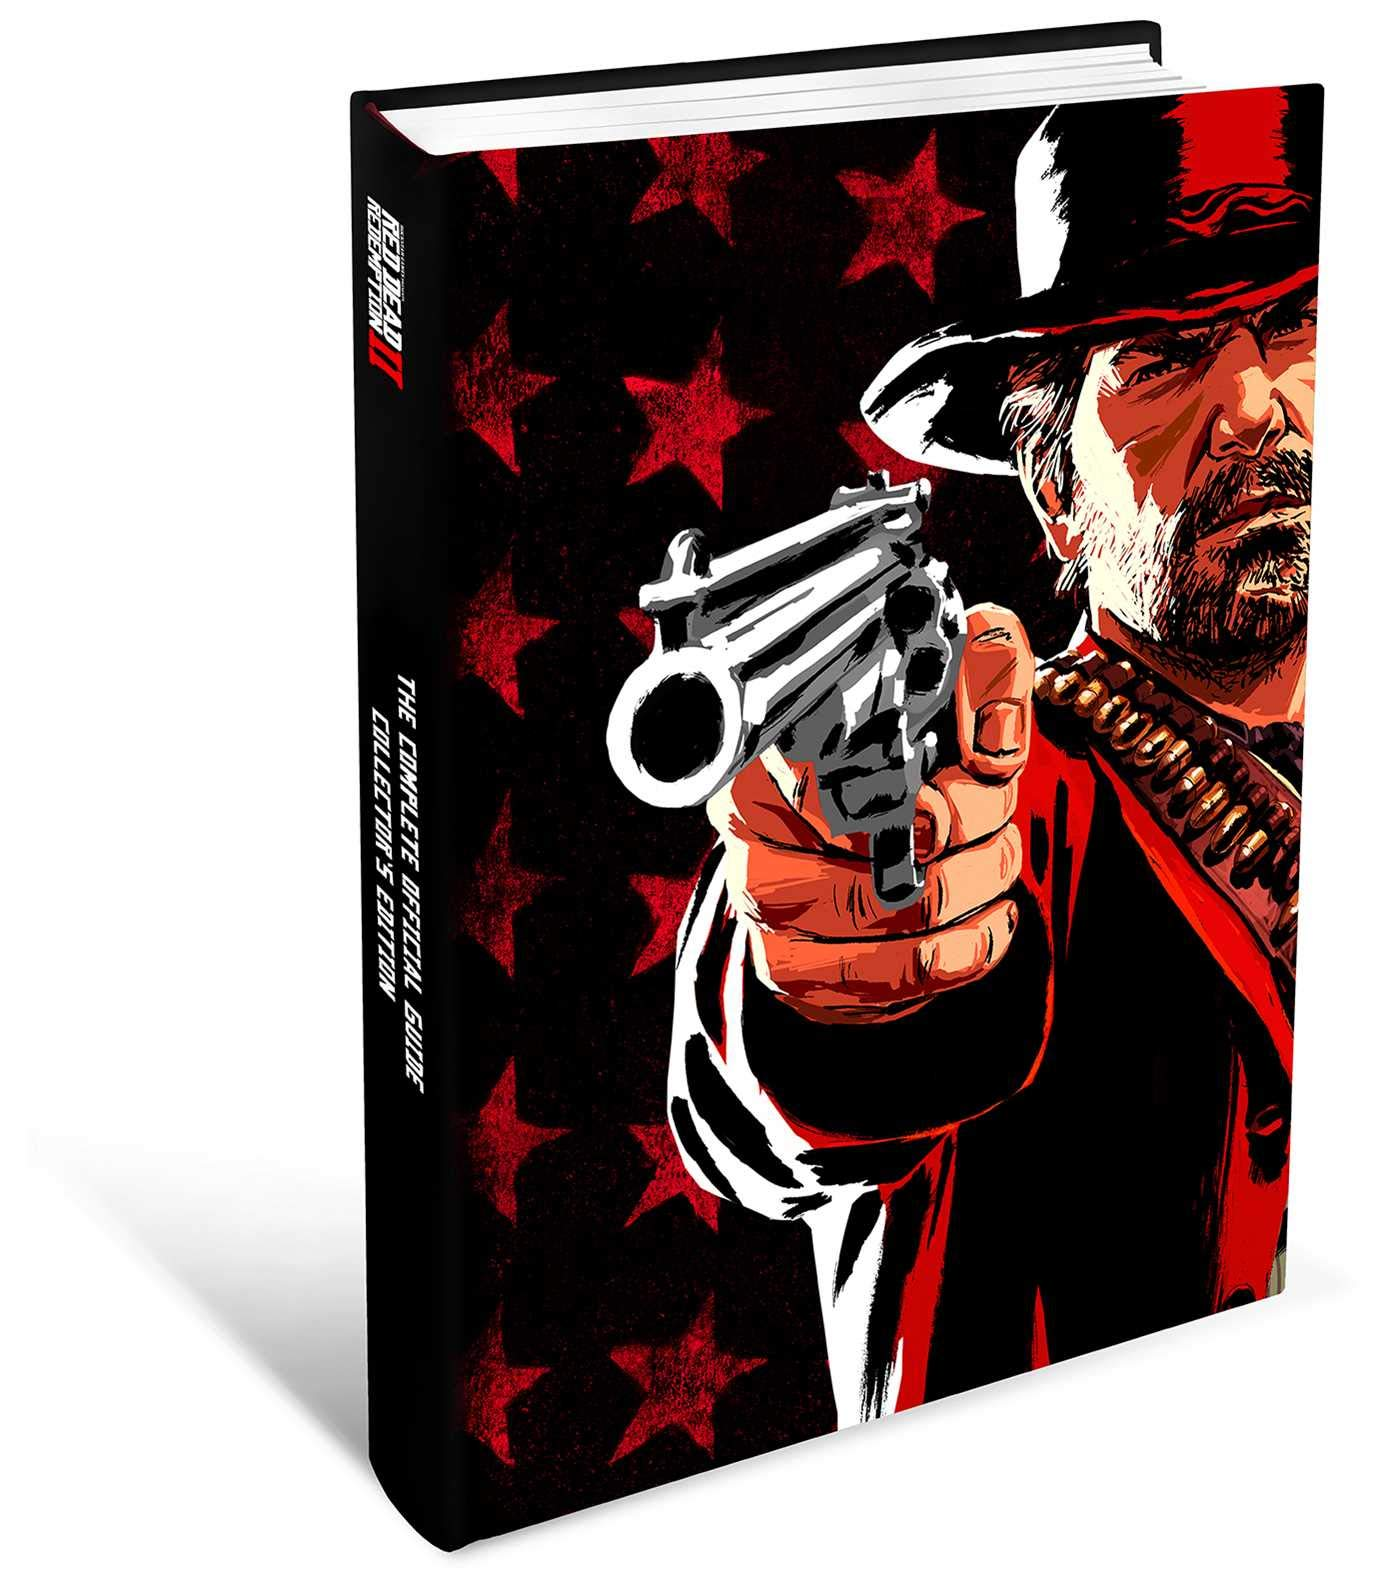 RED DEAD REDEMPTION 2: The Complete Official Guide Collectors Edition: Amazon.es: Piggyback: Libros en idiomas extranjeros